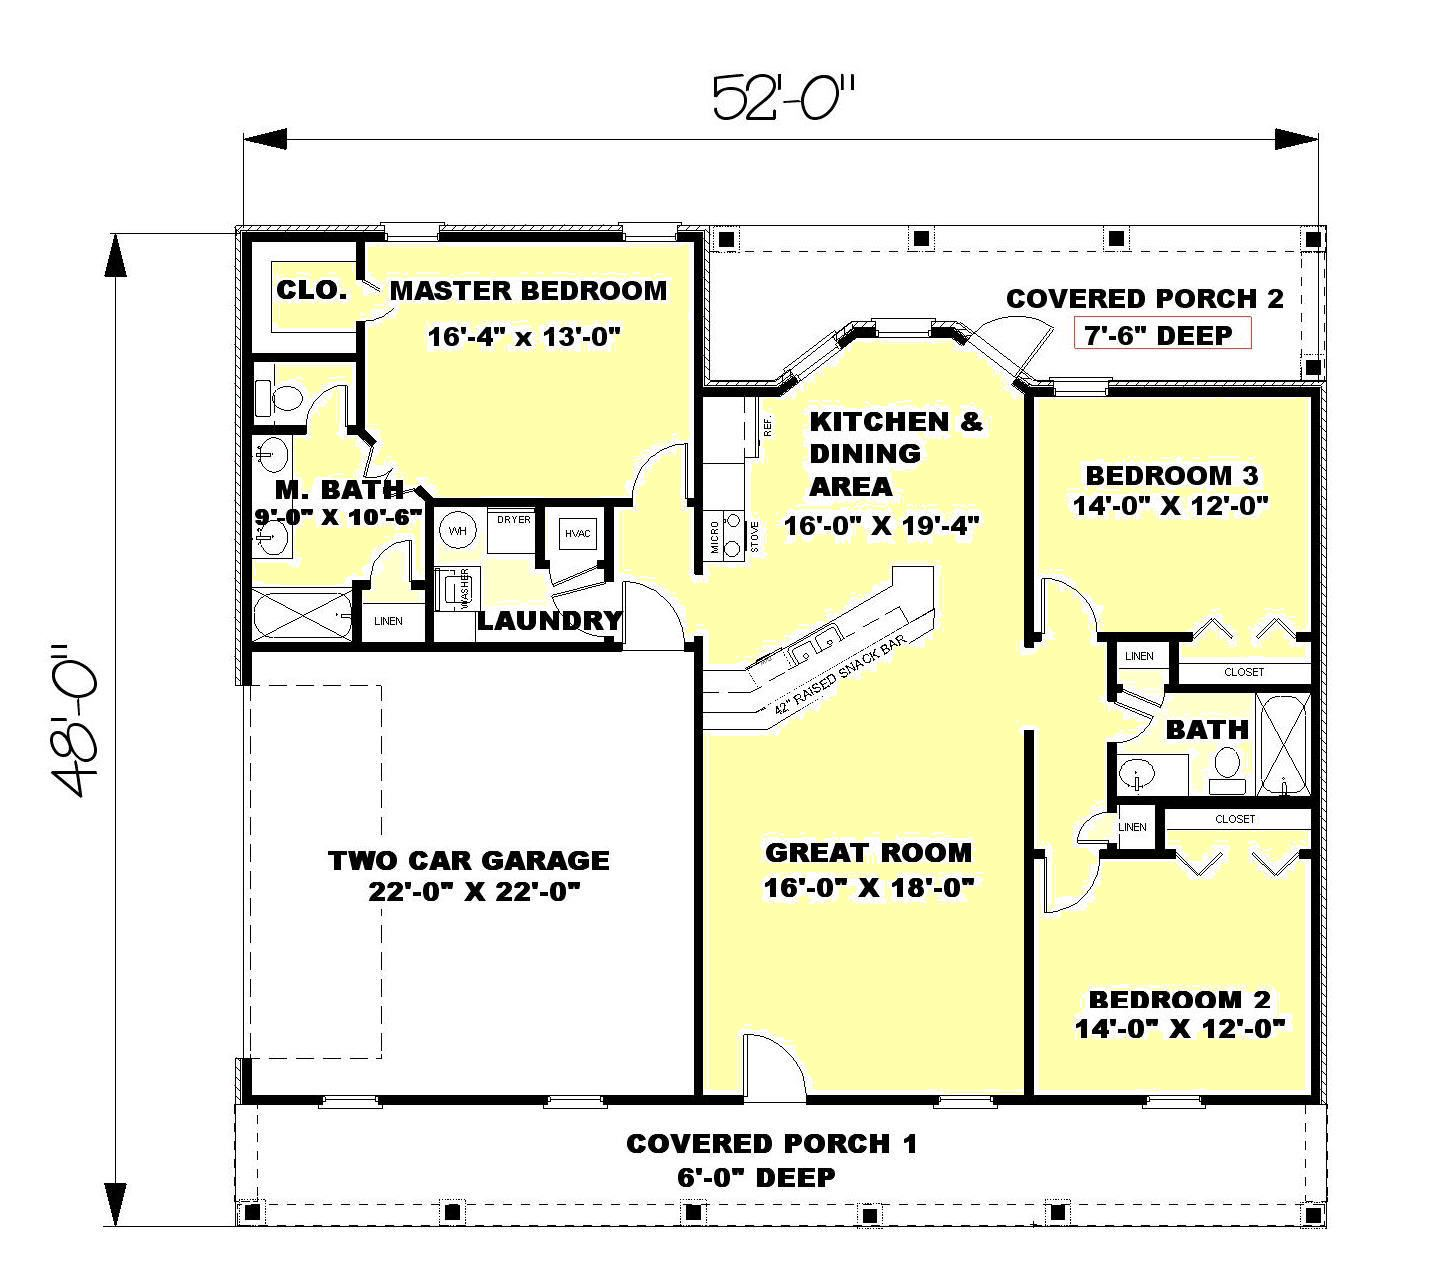 Ranch Style House Plan 3 Beds 2 Baths 1500 Sq Ft Plan 44 134 Main